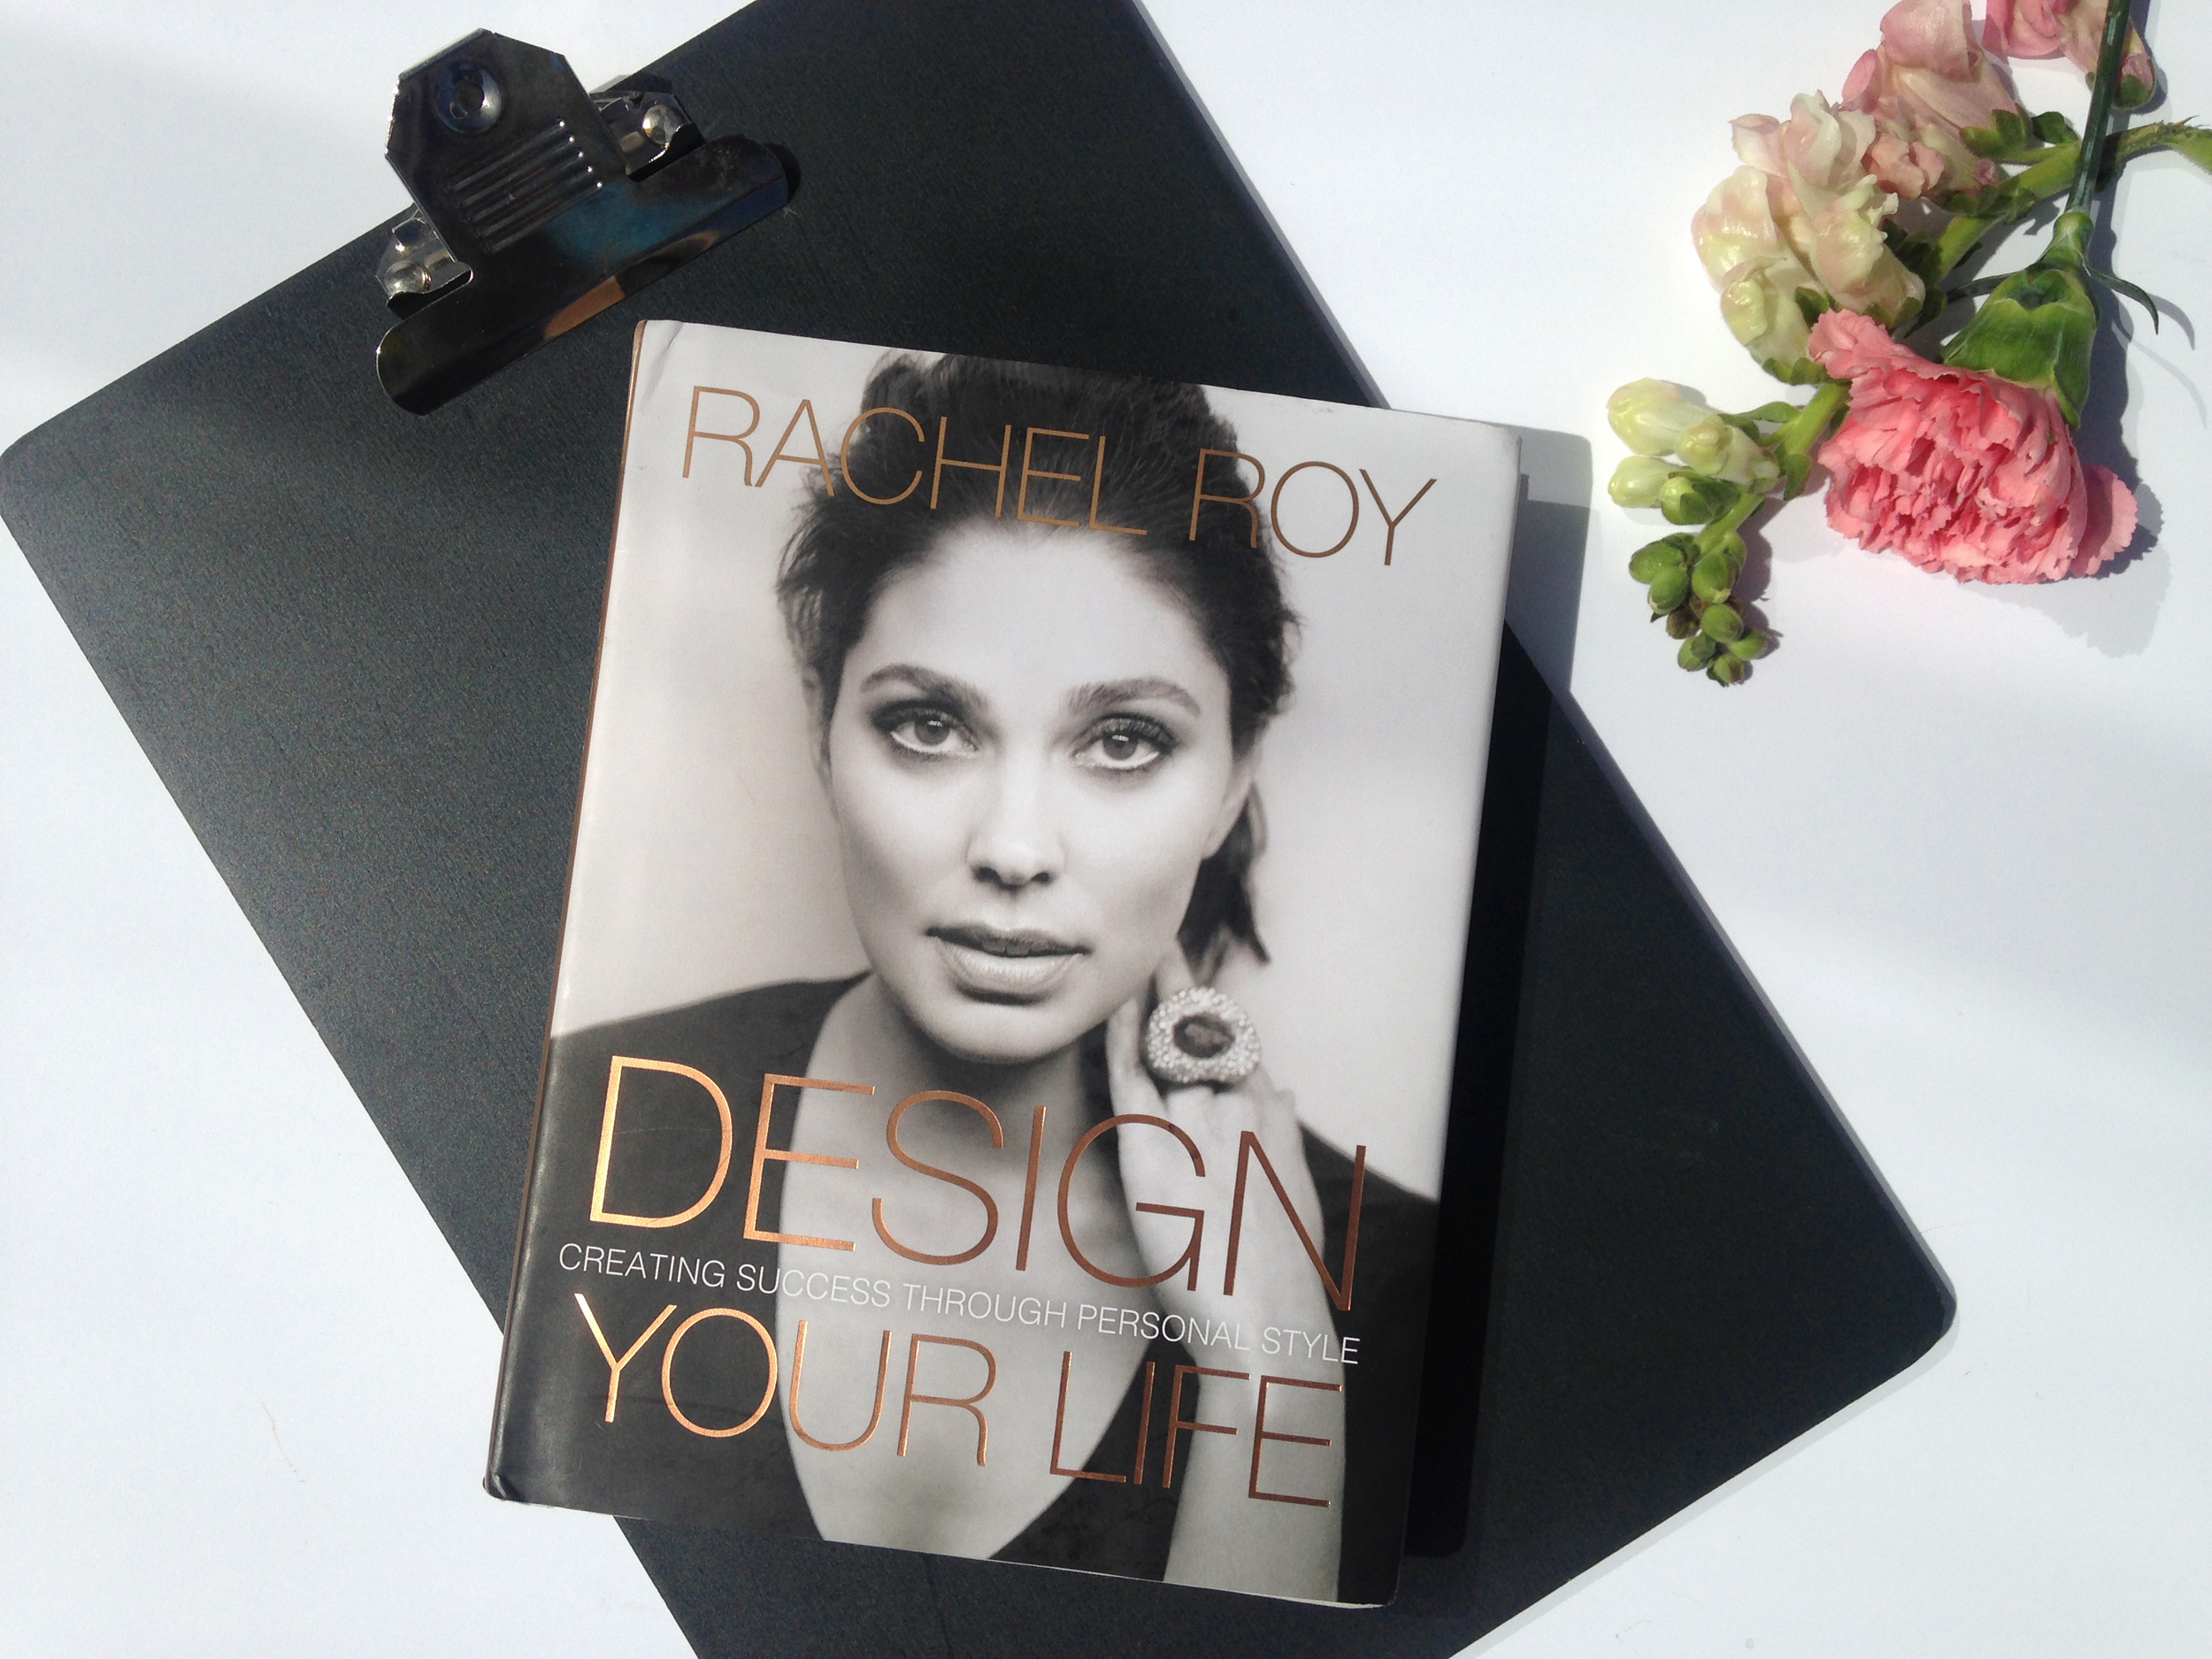 Andrea-Fenise-Booked-Rachel-Roy-Design-Your-Life